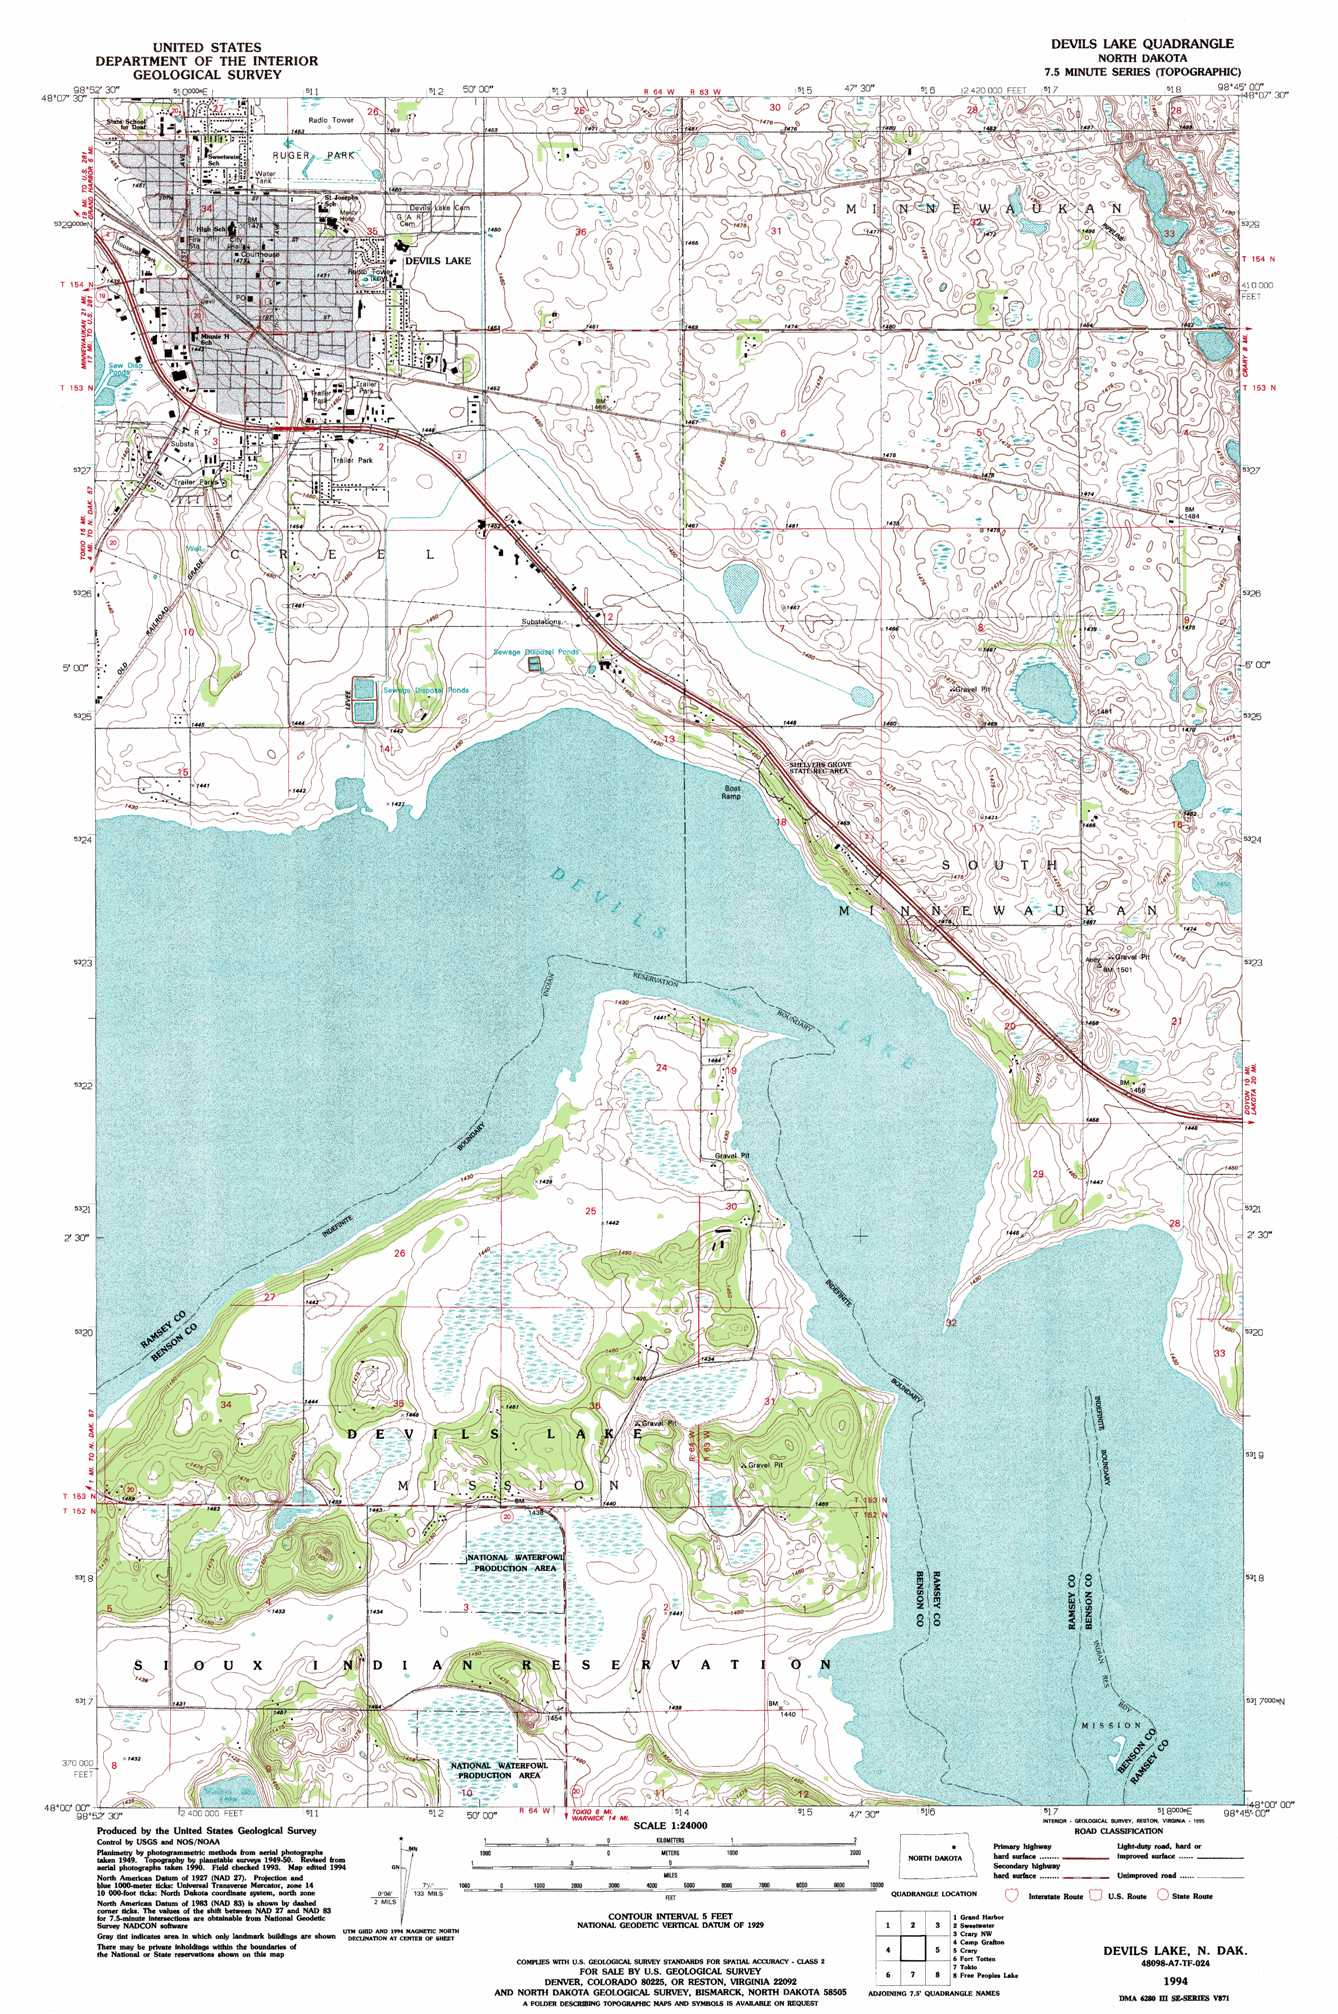 Devils Lake topographic map ND USGS Topo Quad 48098a7